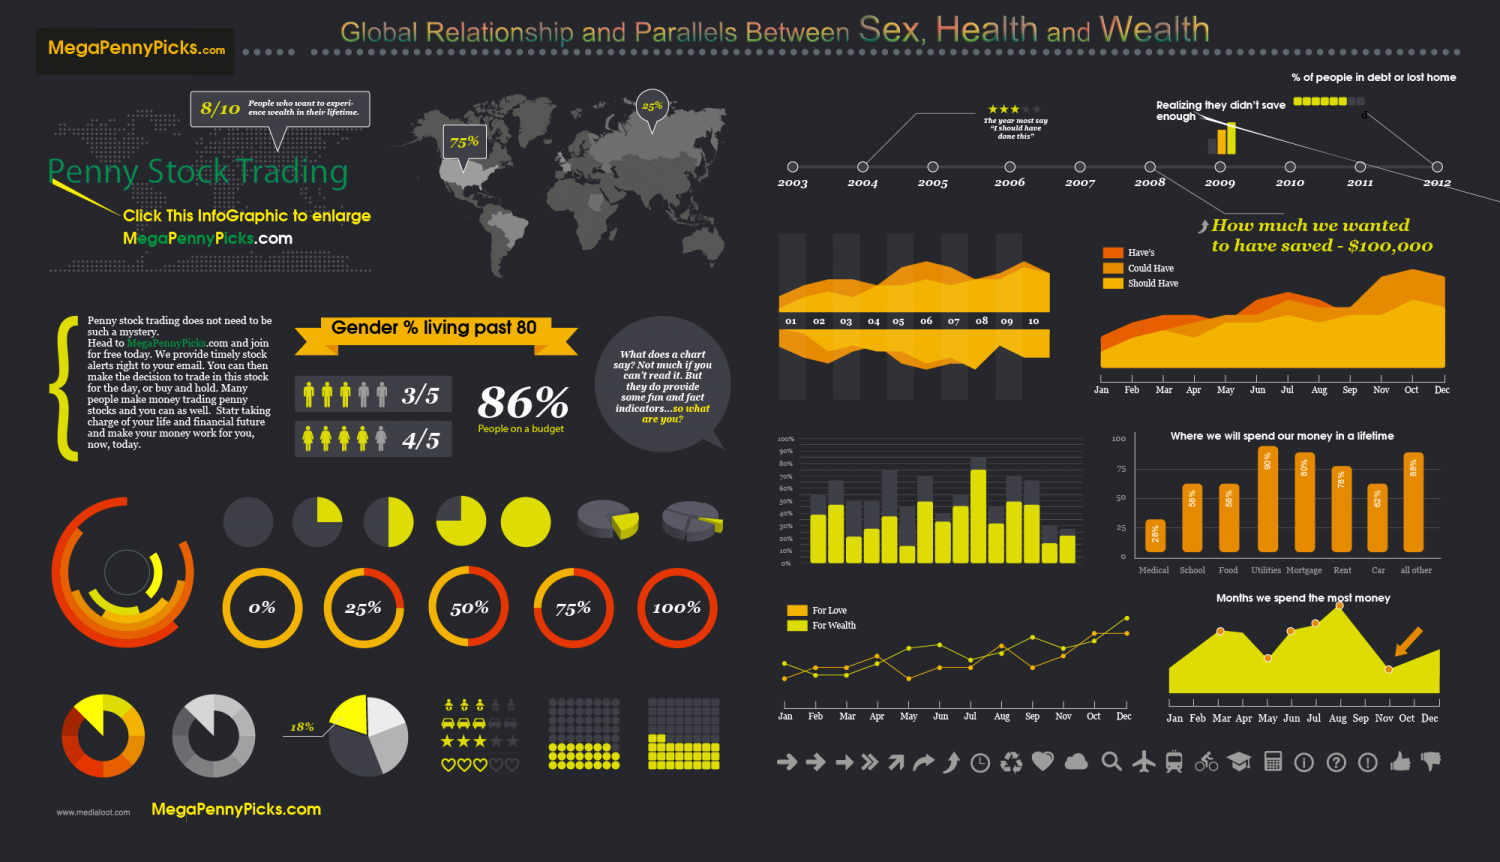 Global Relationship and Parallels Between Sex, Health, and Wealth Infographic